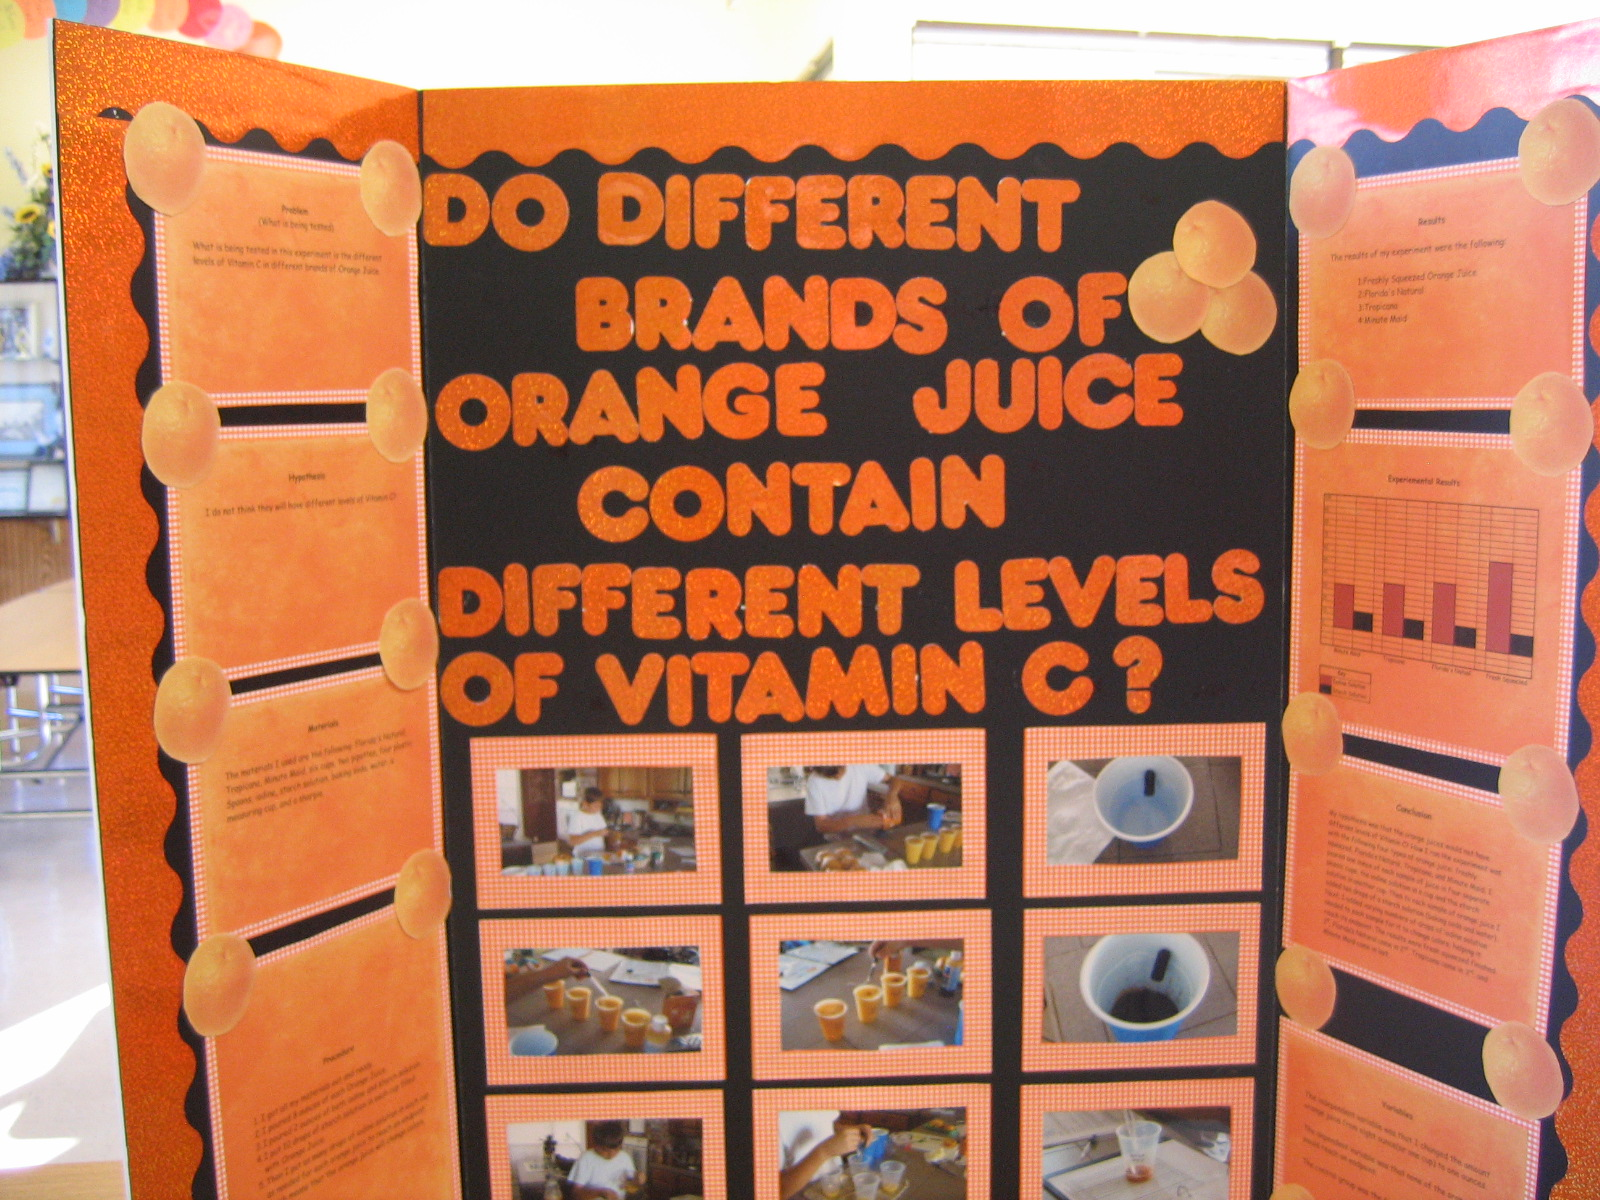 do different brands of orange juice contain different